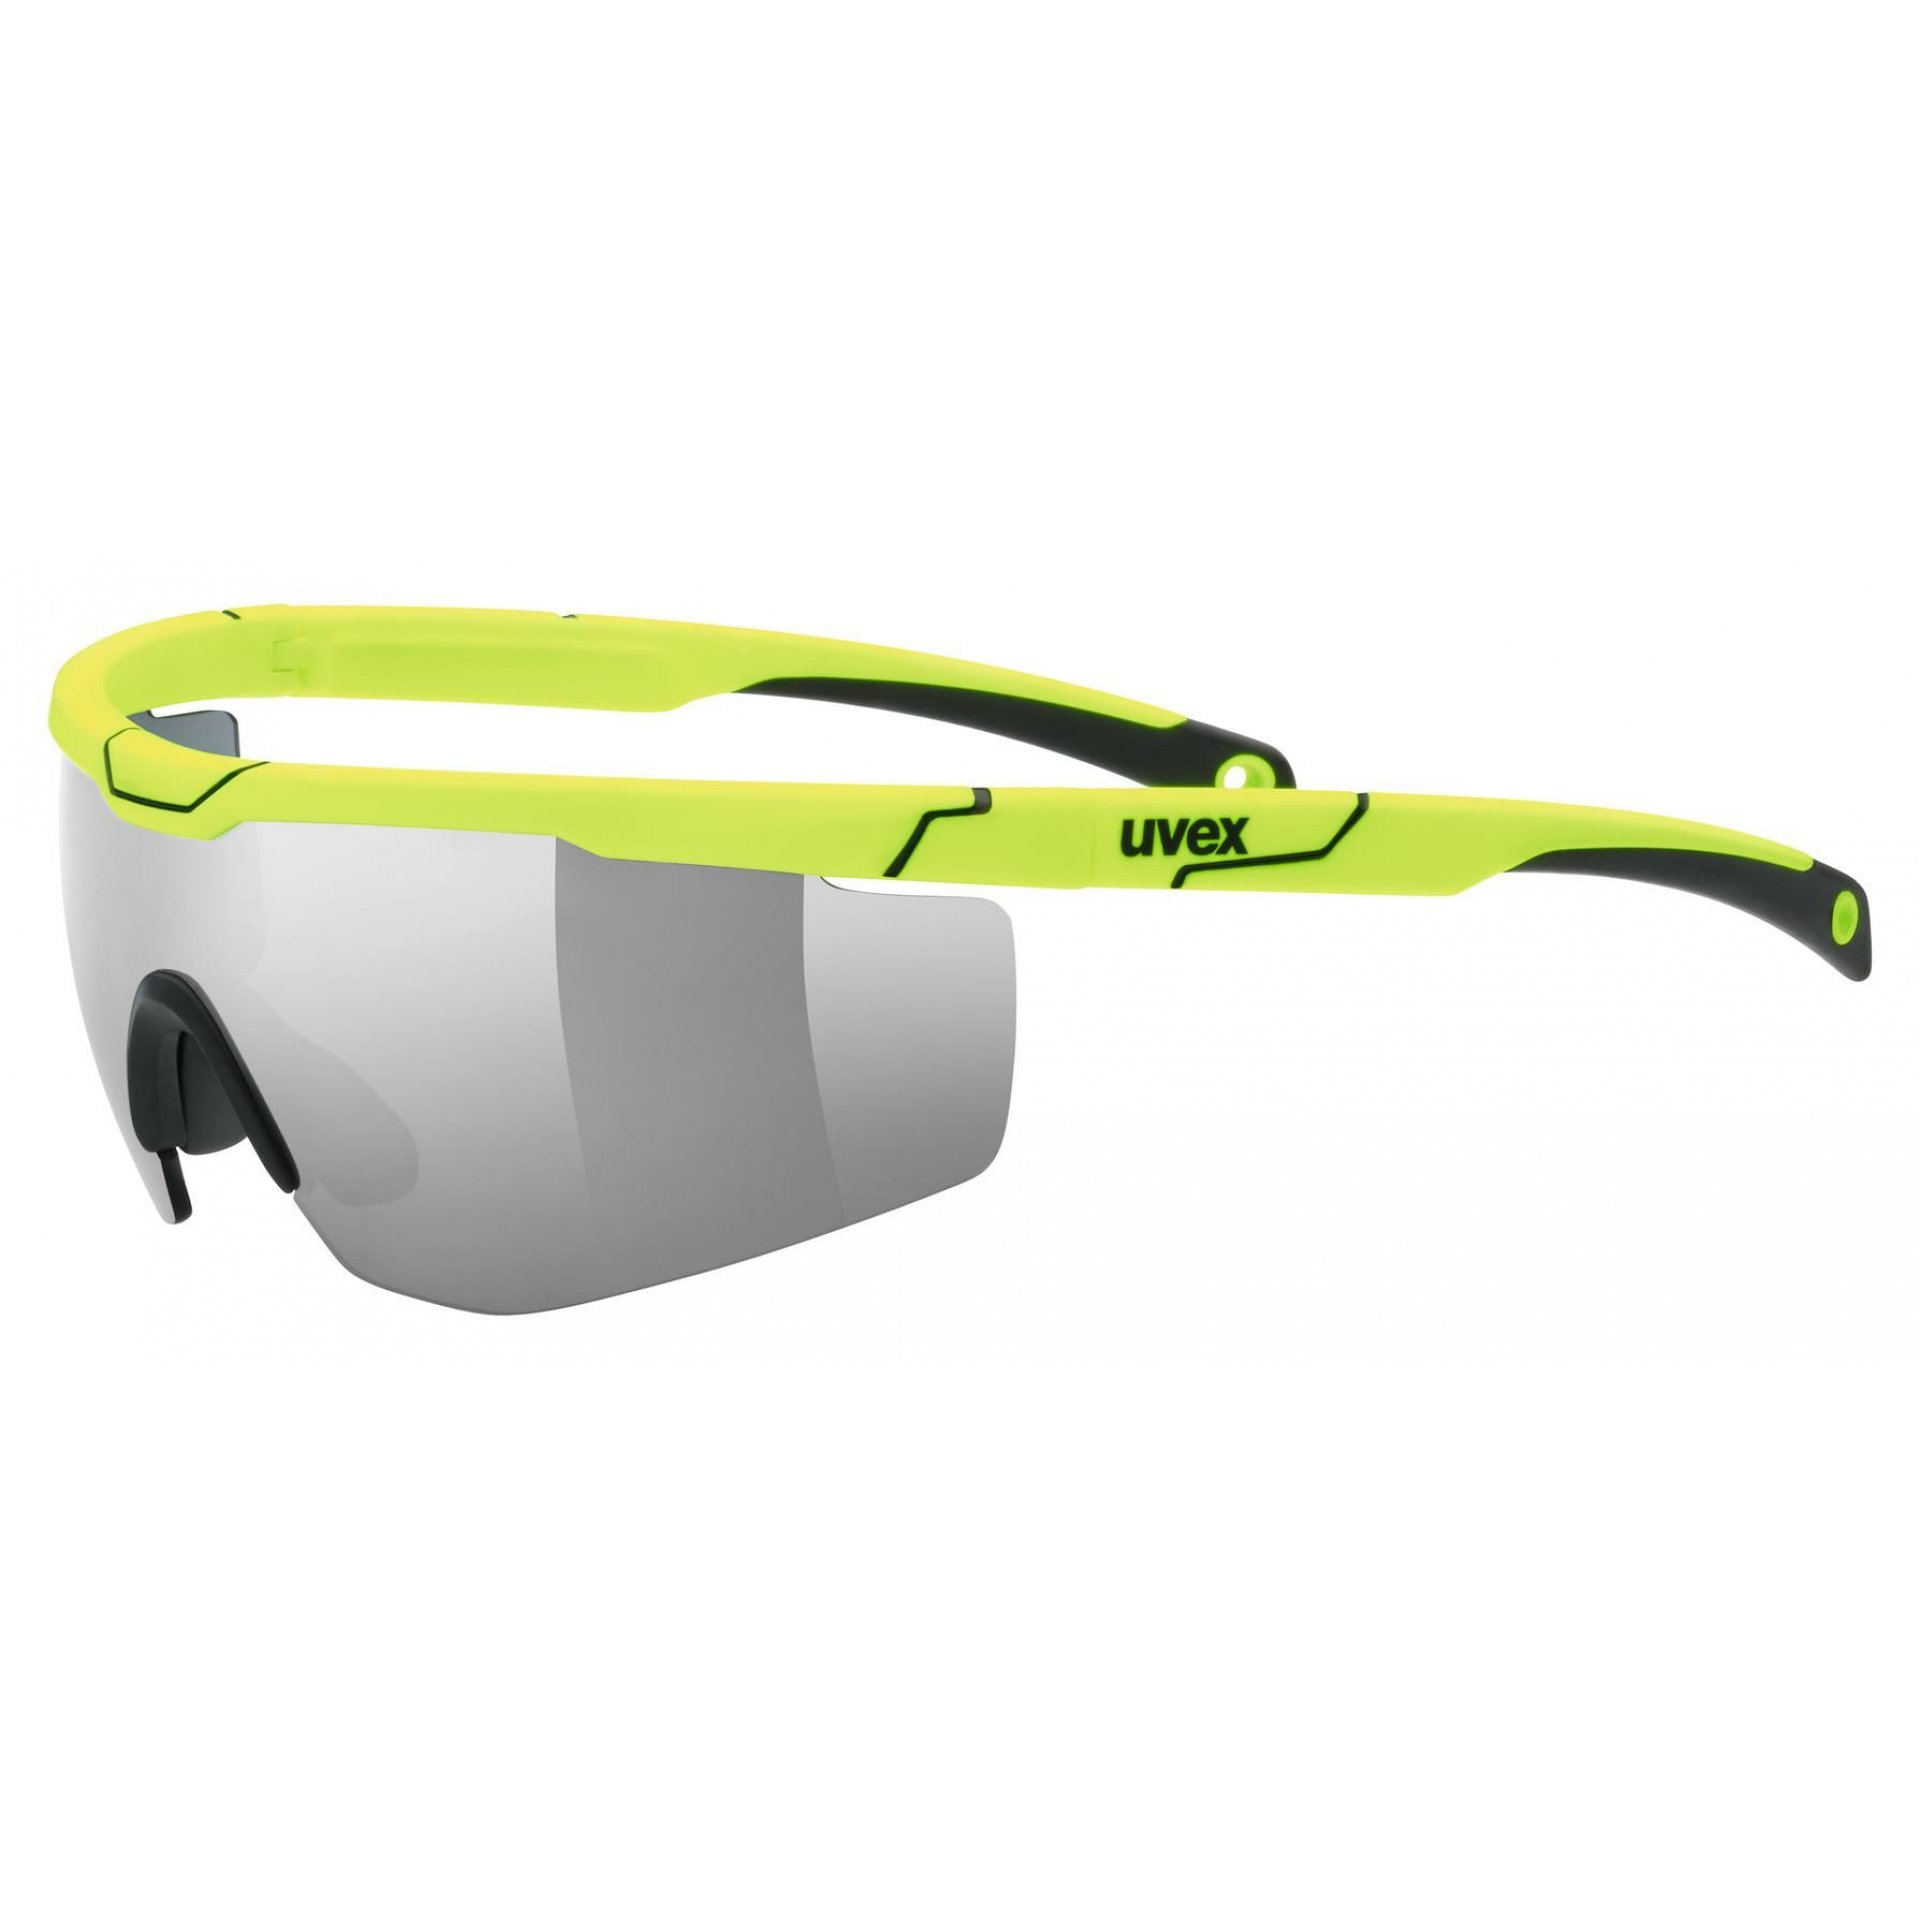 OKULARY UVEX  SPORTSTYLE 117 YELLOW